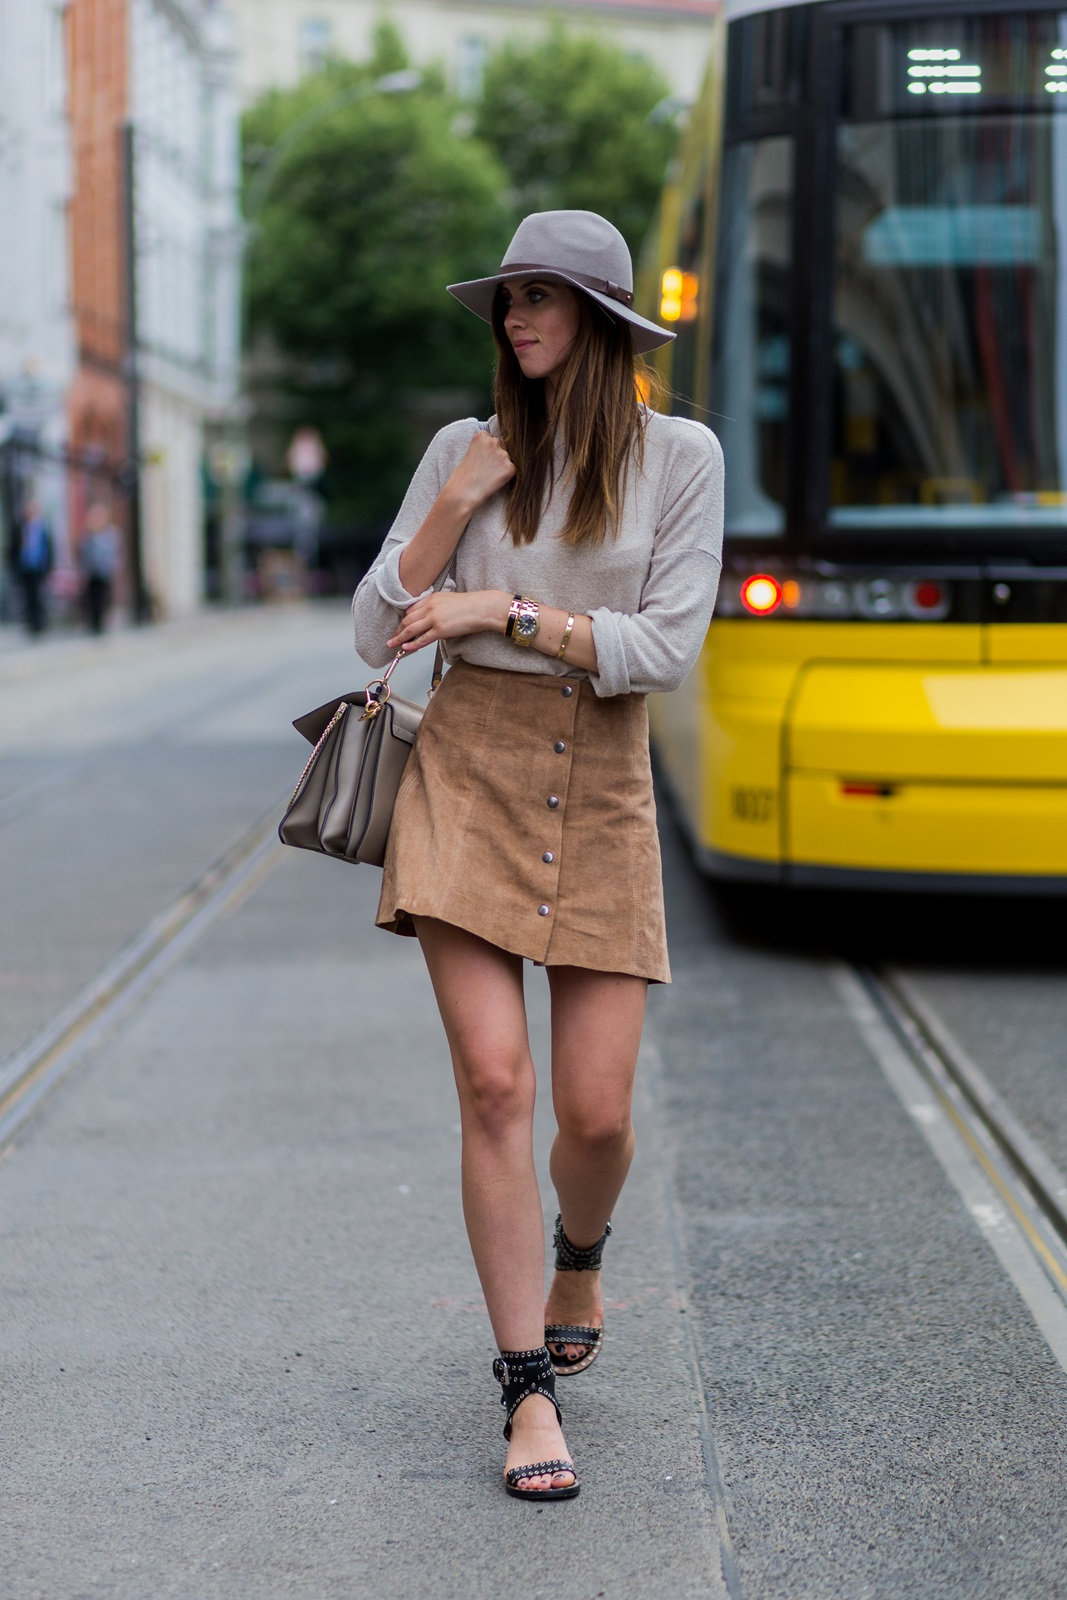 Barbora Ondrackova Is Killing It In This Elegant Suede Skirt With Button Front Detailing Pair A Skirt Such As This With Either Tights Or Bare Legs For A Beige Aesthetic To Die